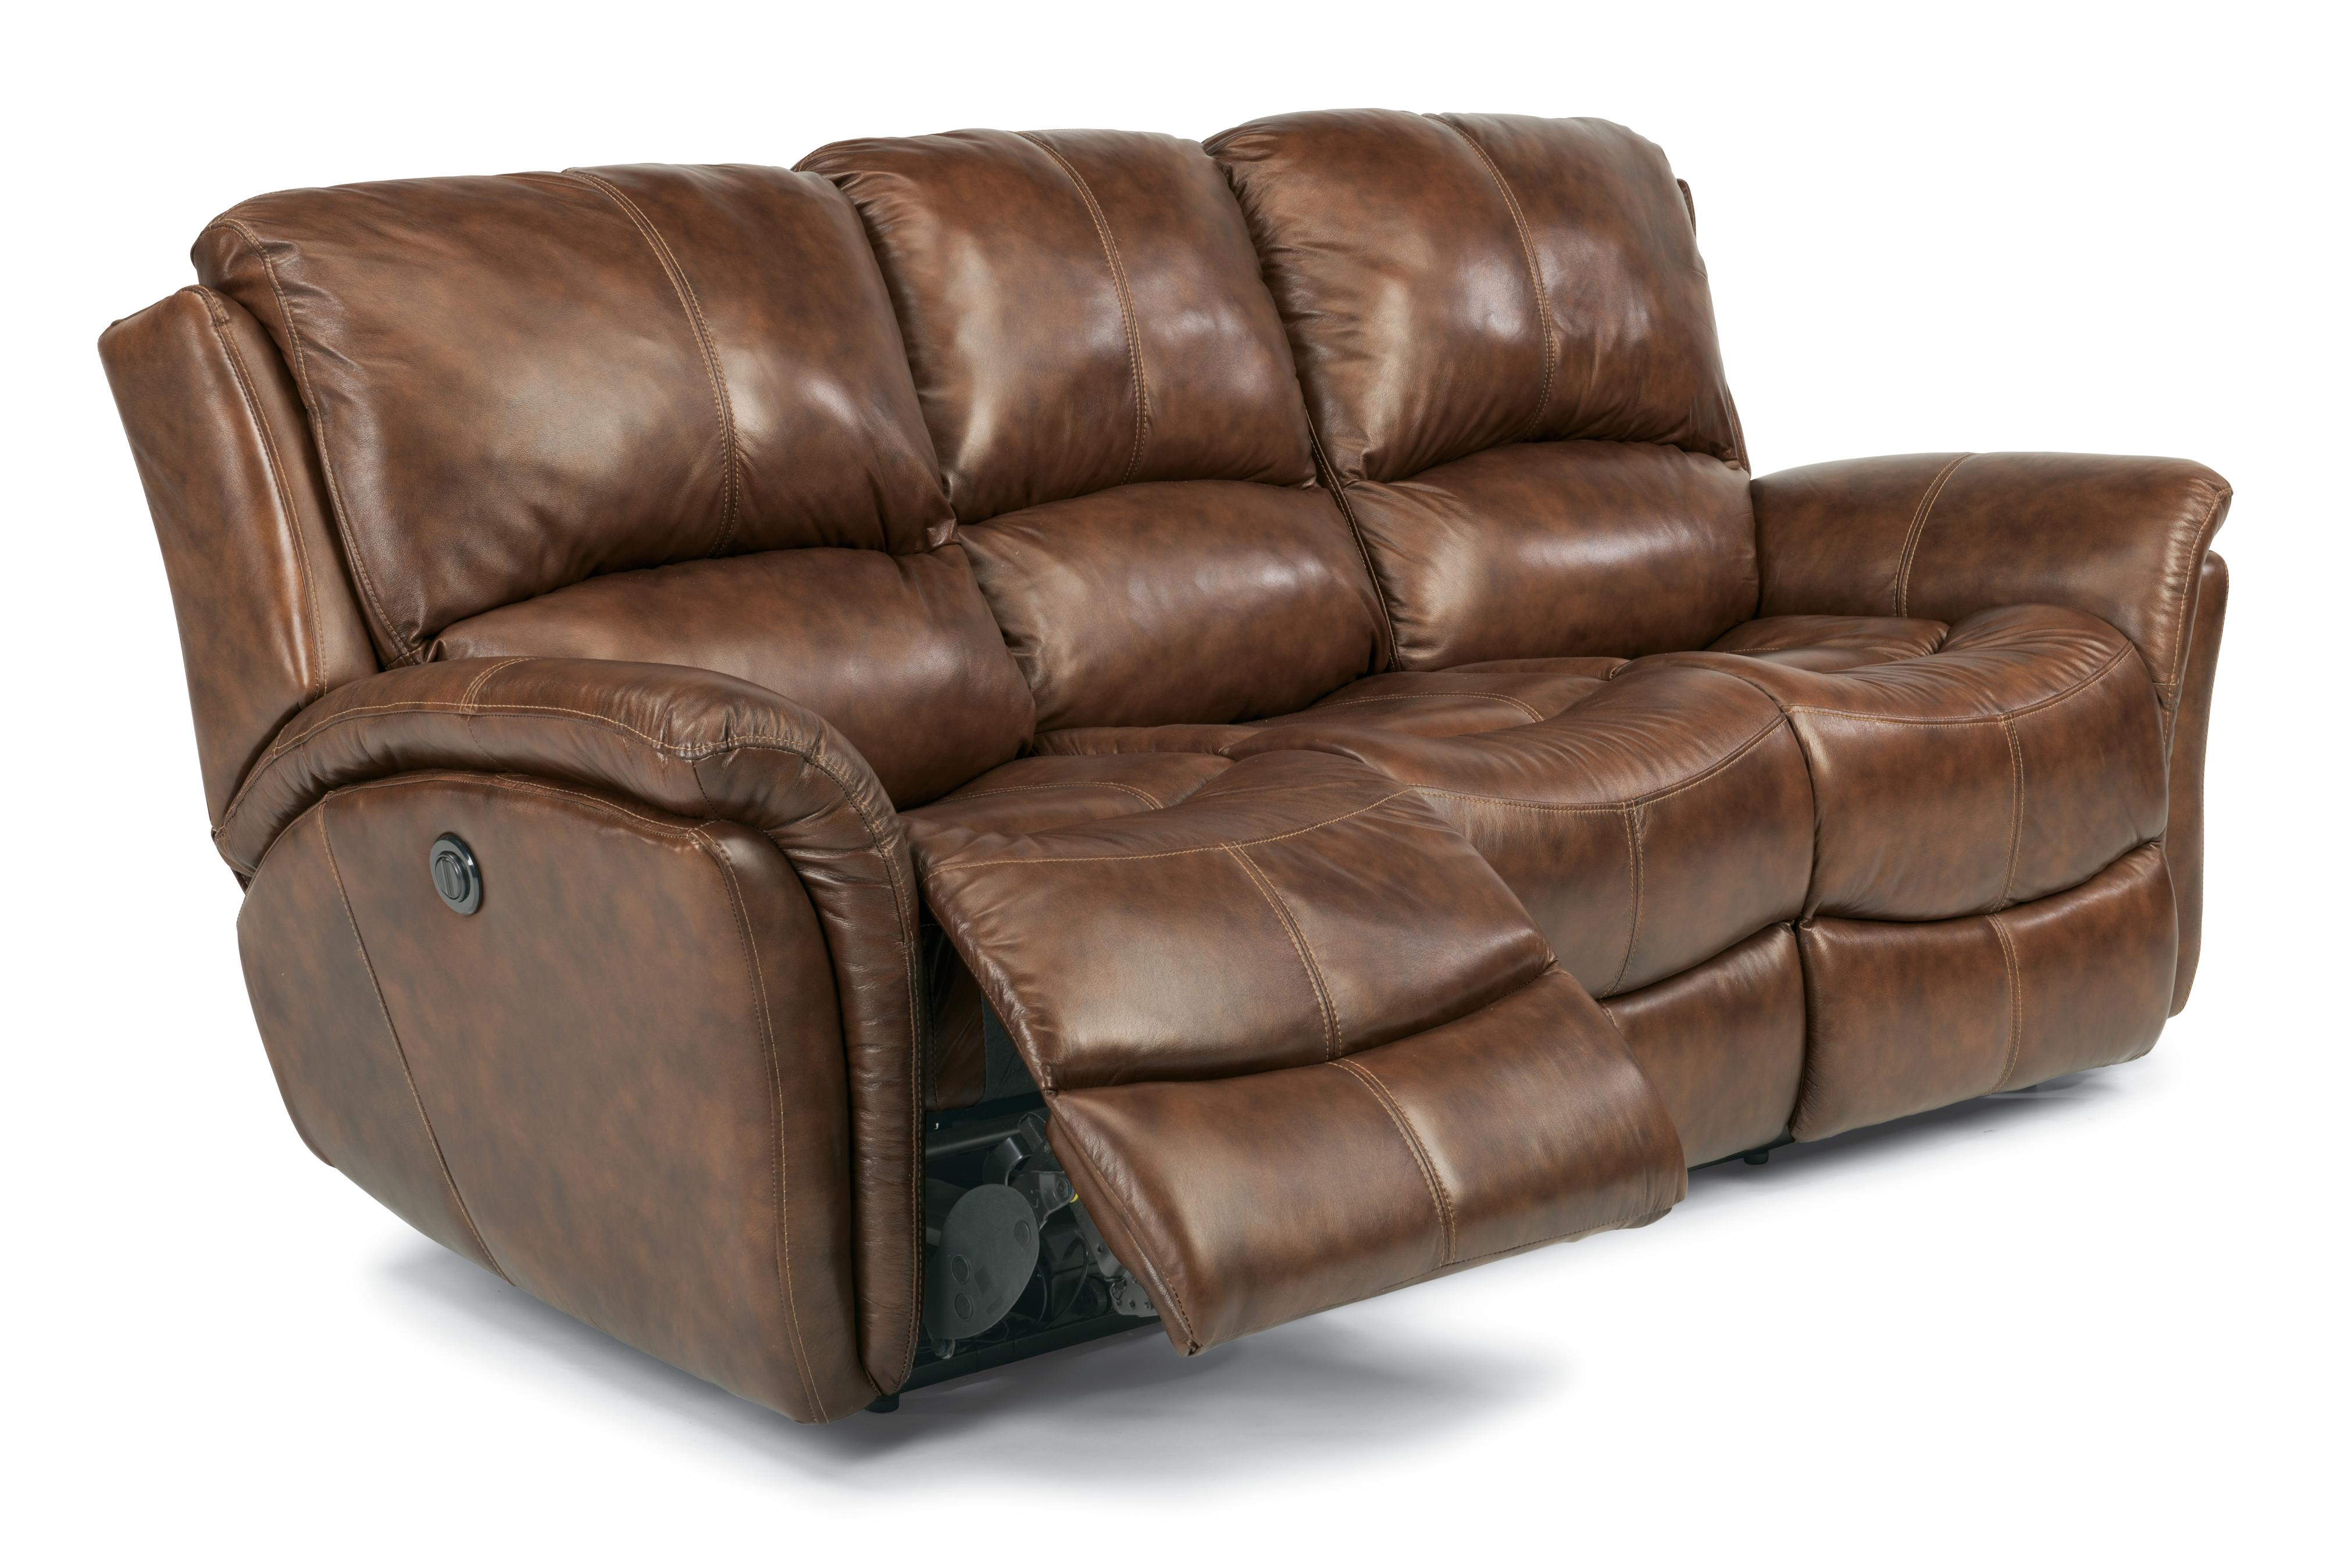 Power Reclining Sofa : Flexsteel latitudes dominique p casual reclining